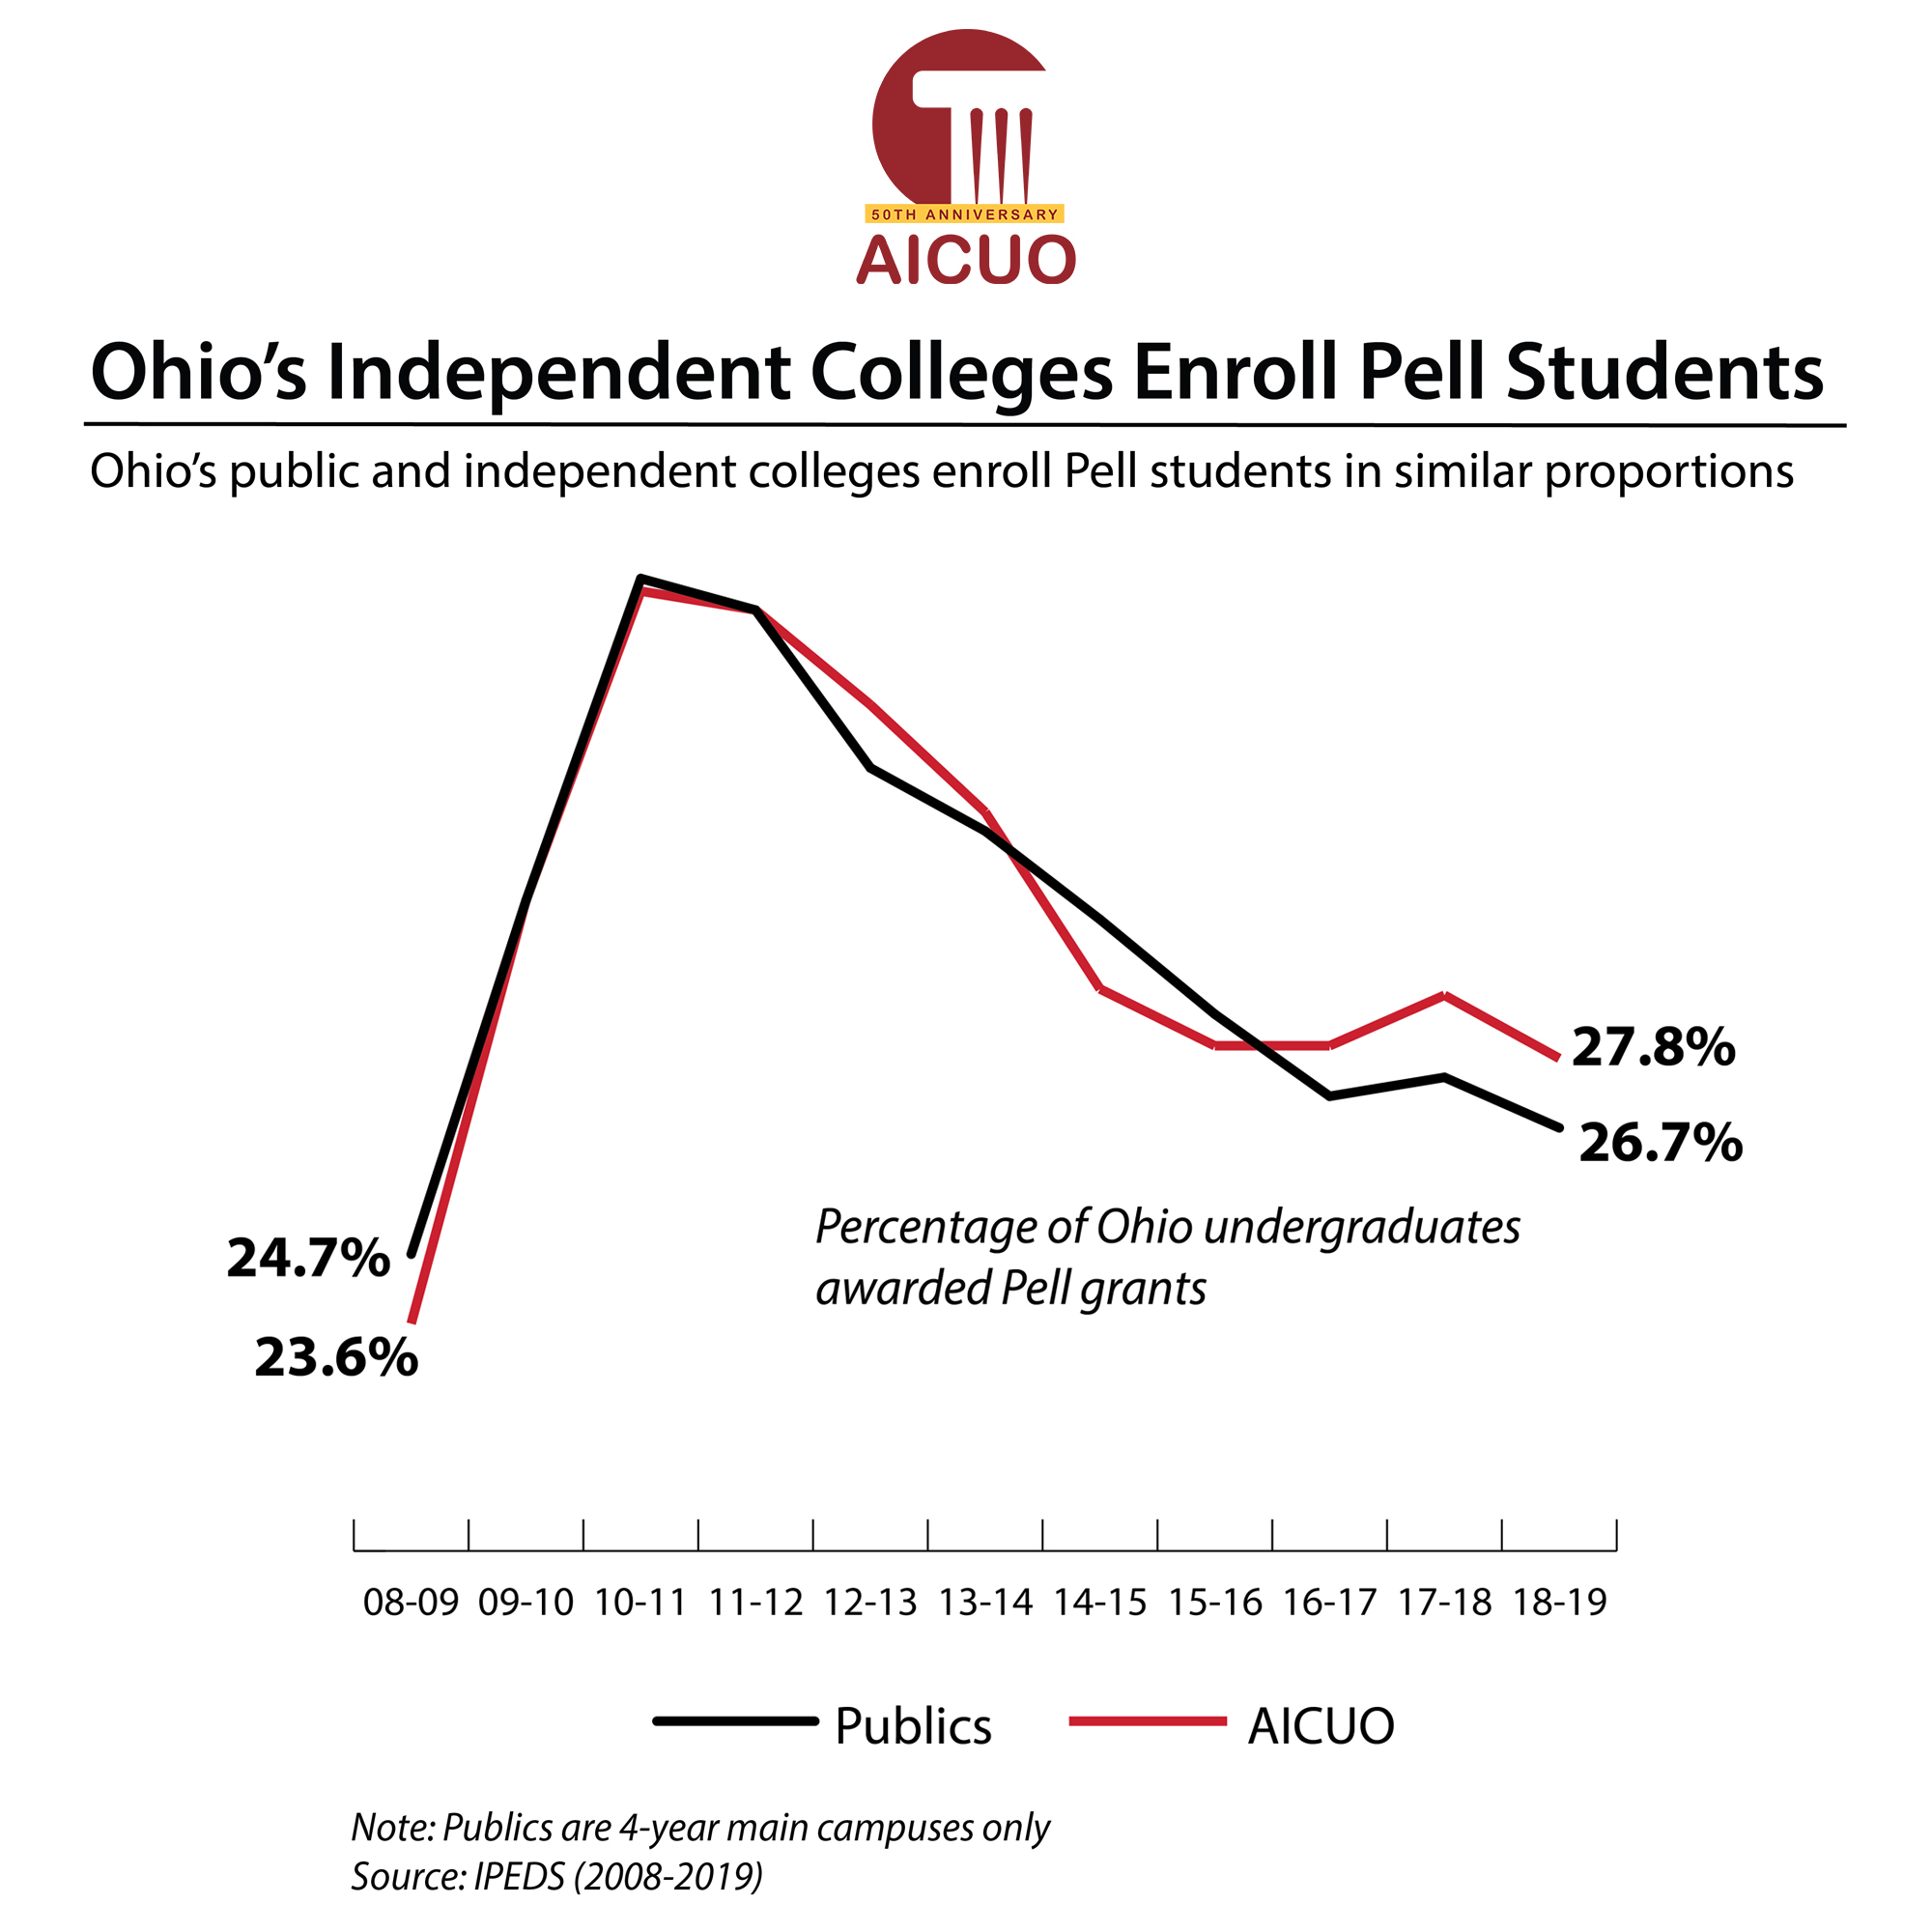 Ohio's Independent Colleges Enroll Pell Students